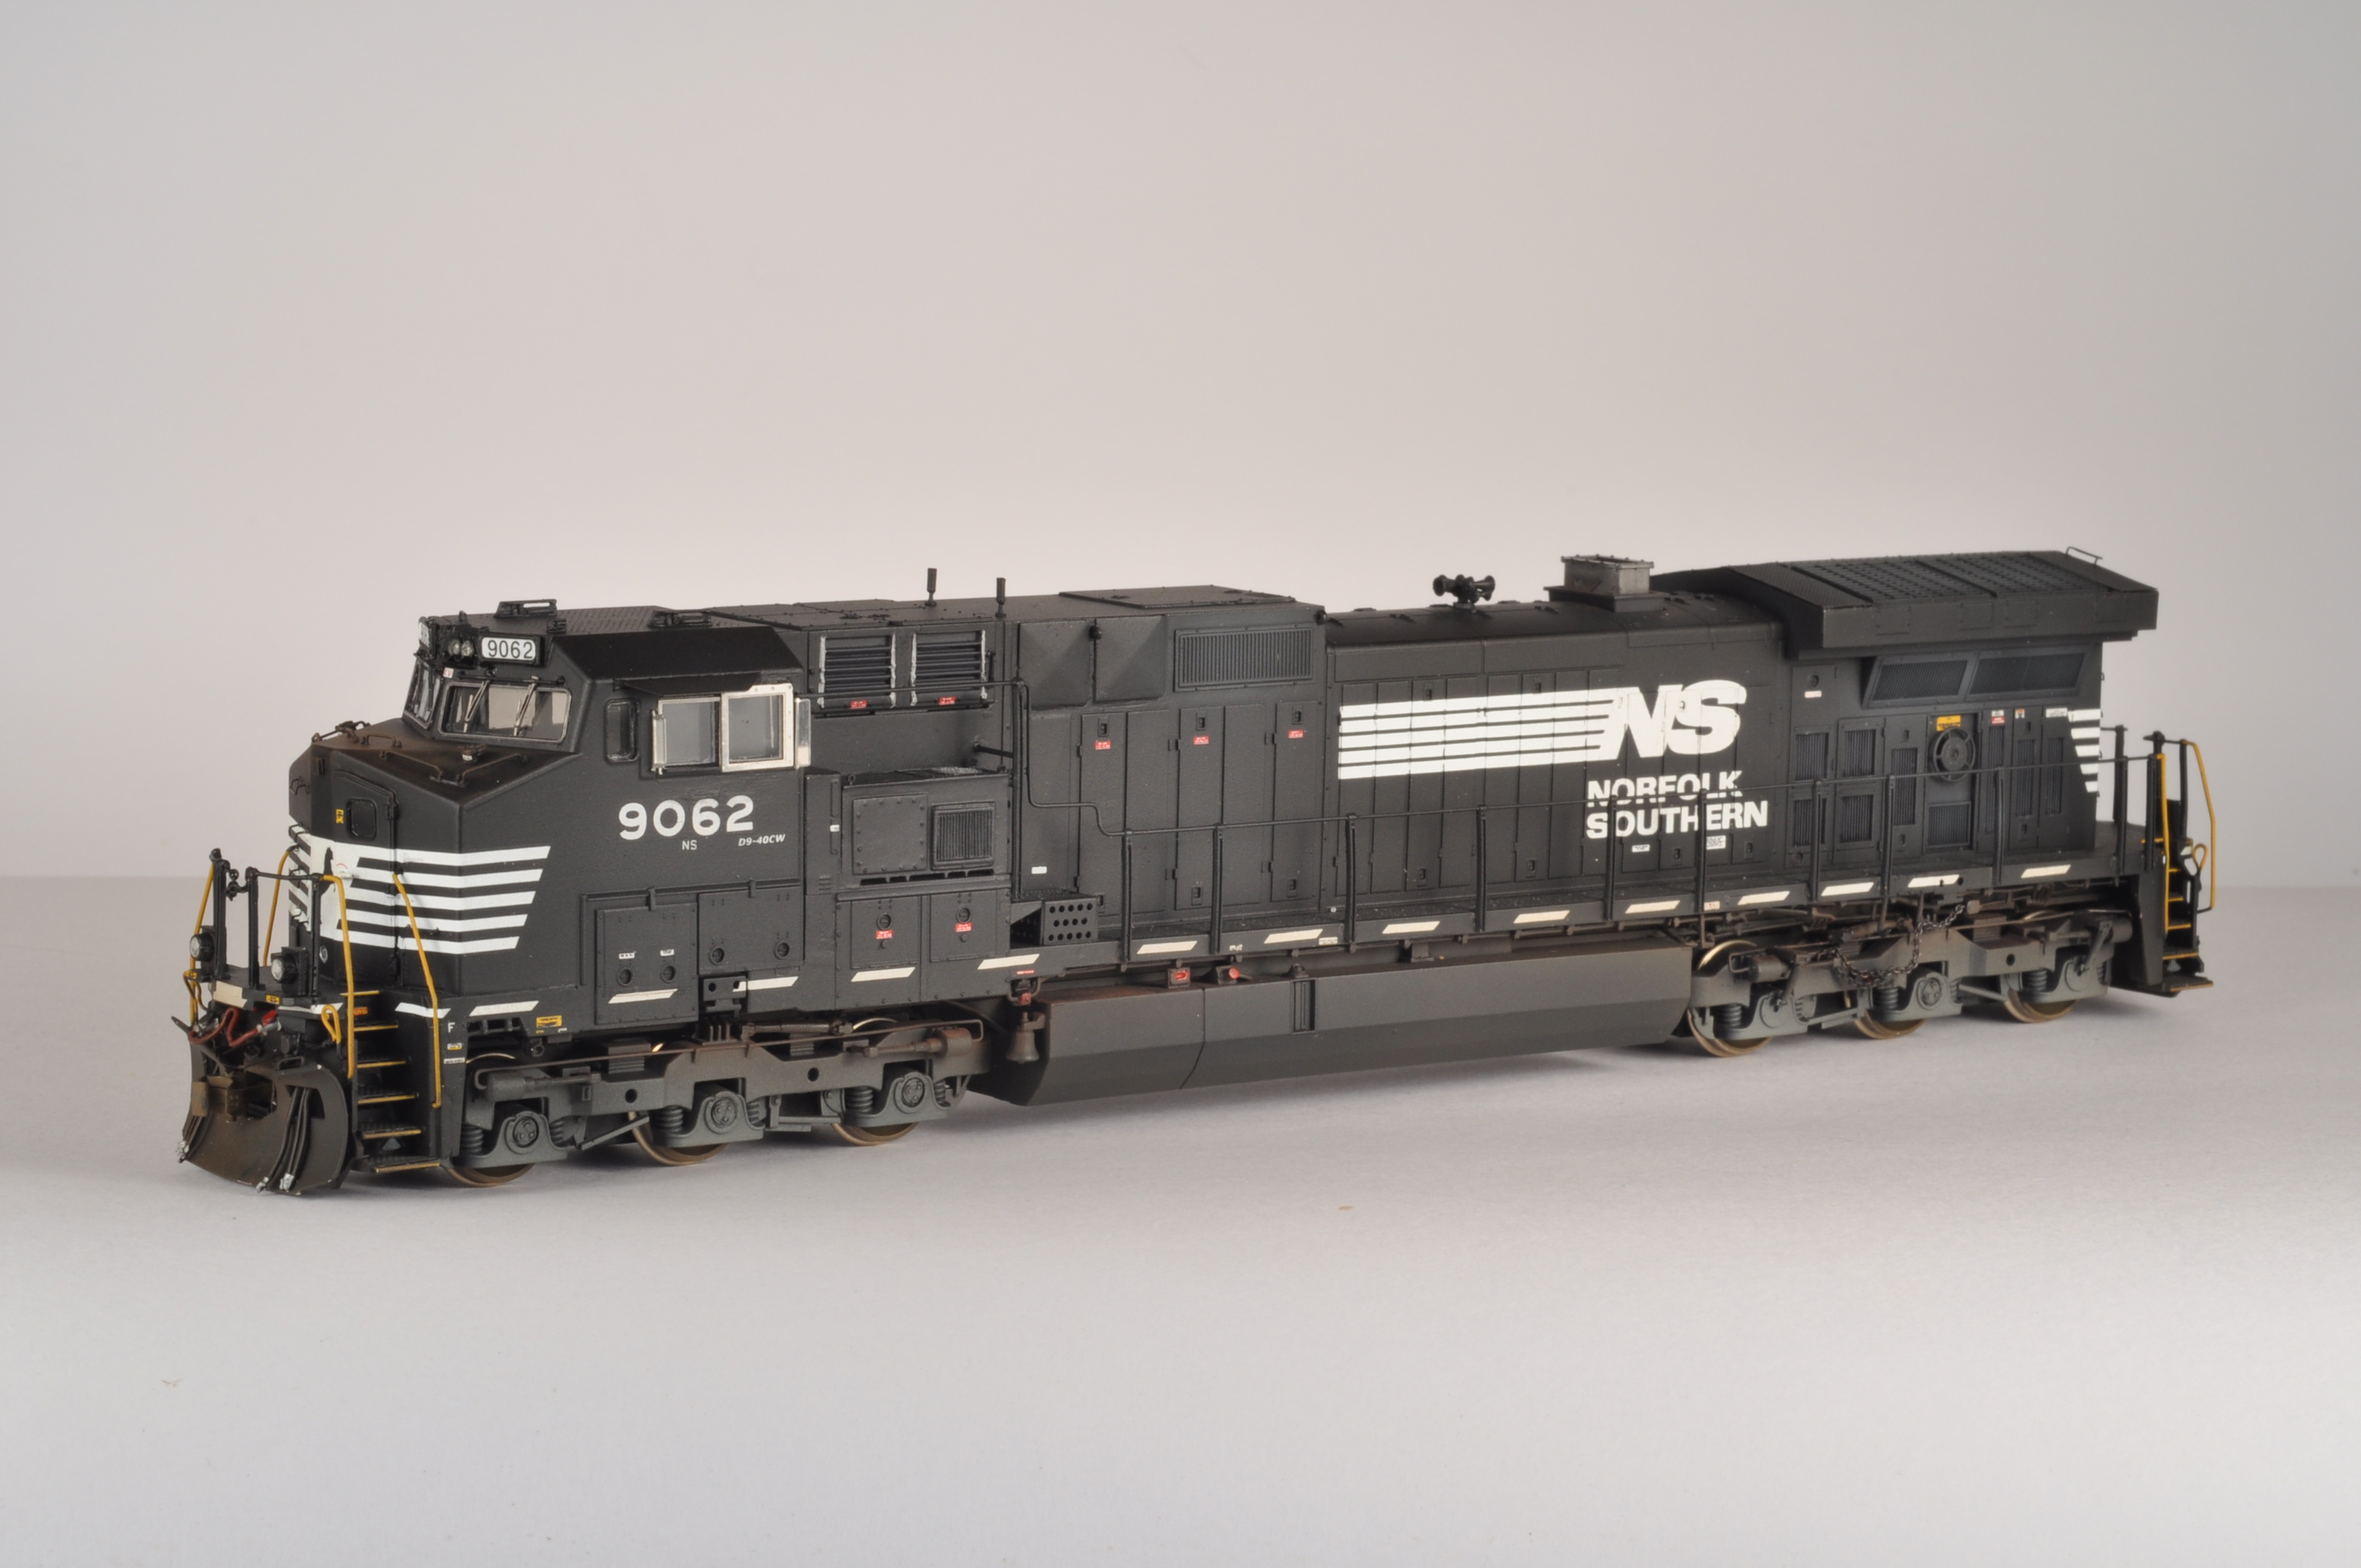 NS 9062 was modeled from an undecorated AthearnC44-9W.